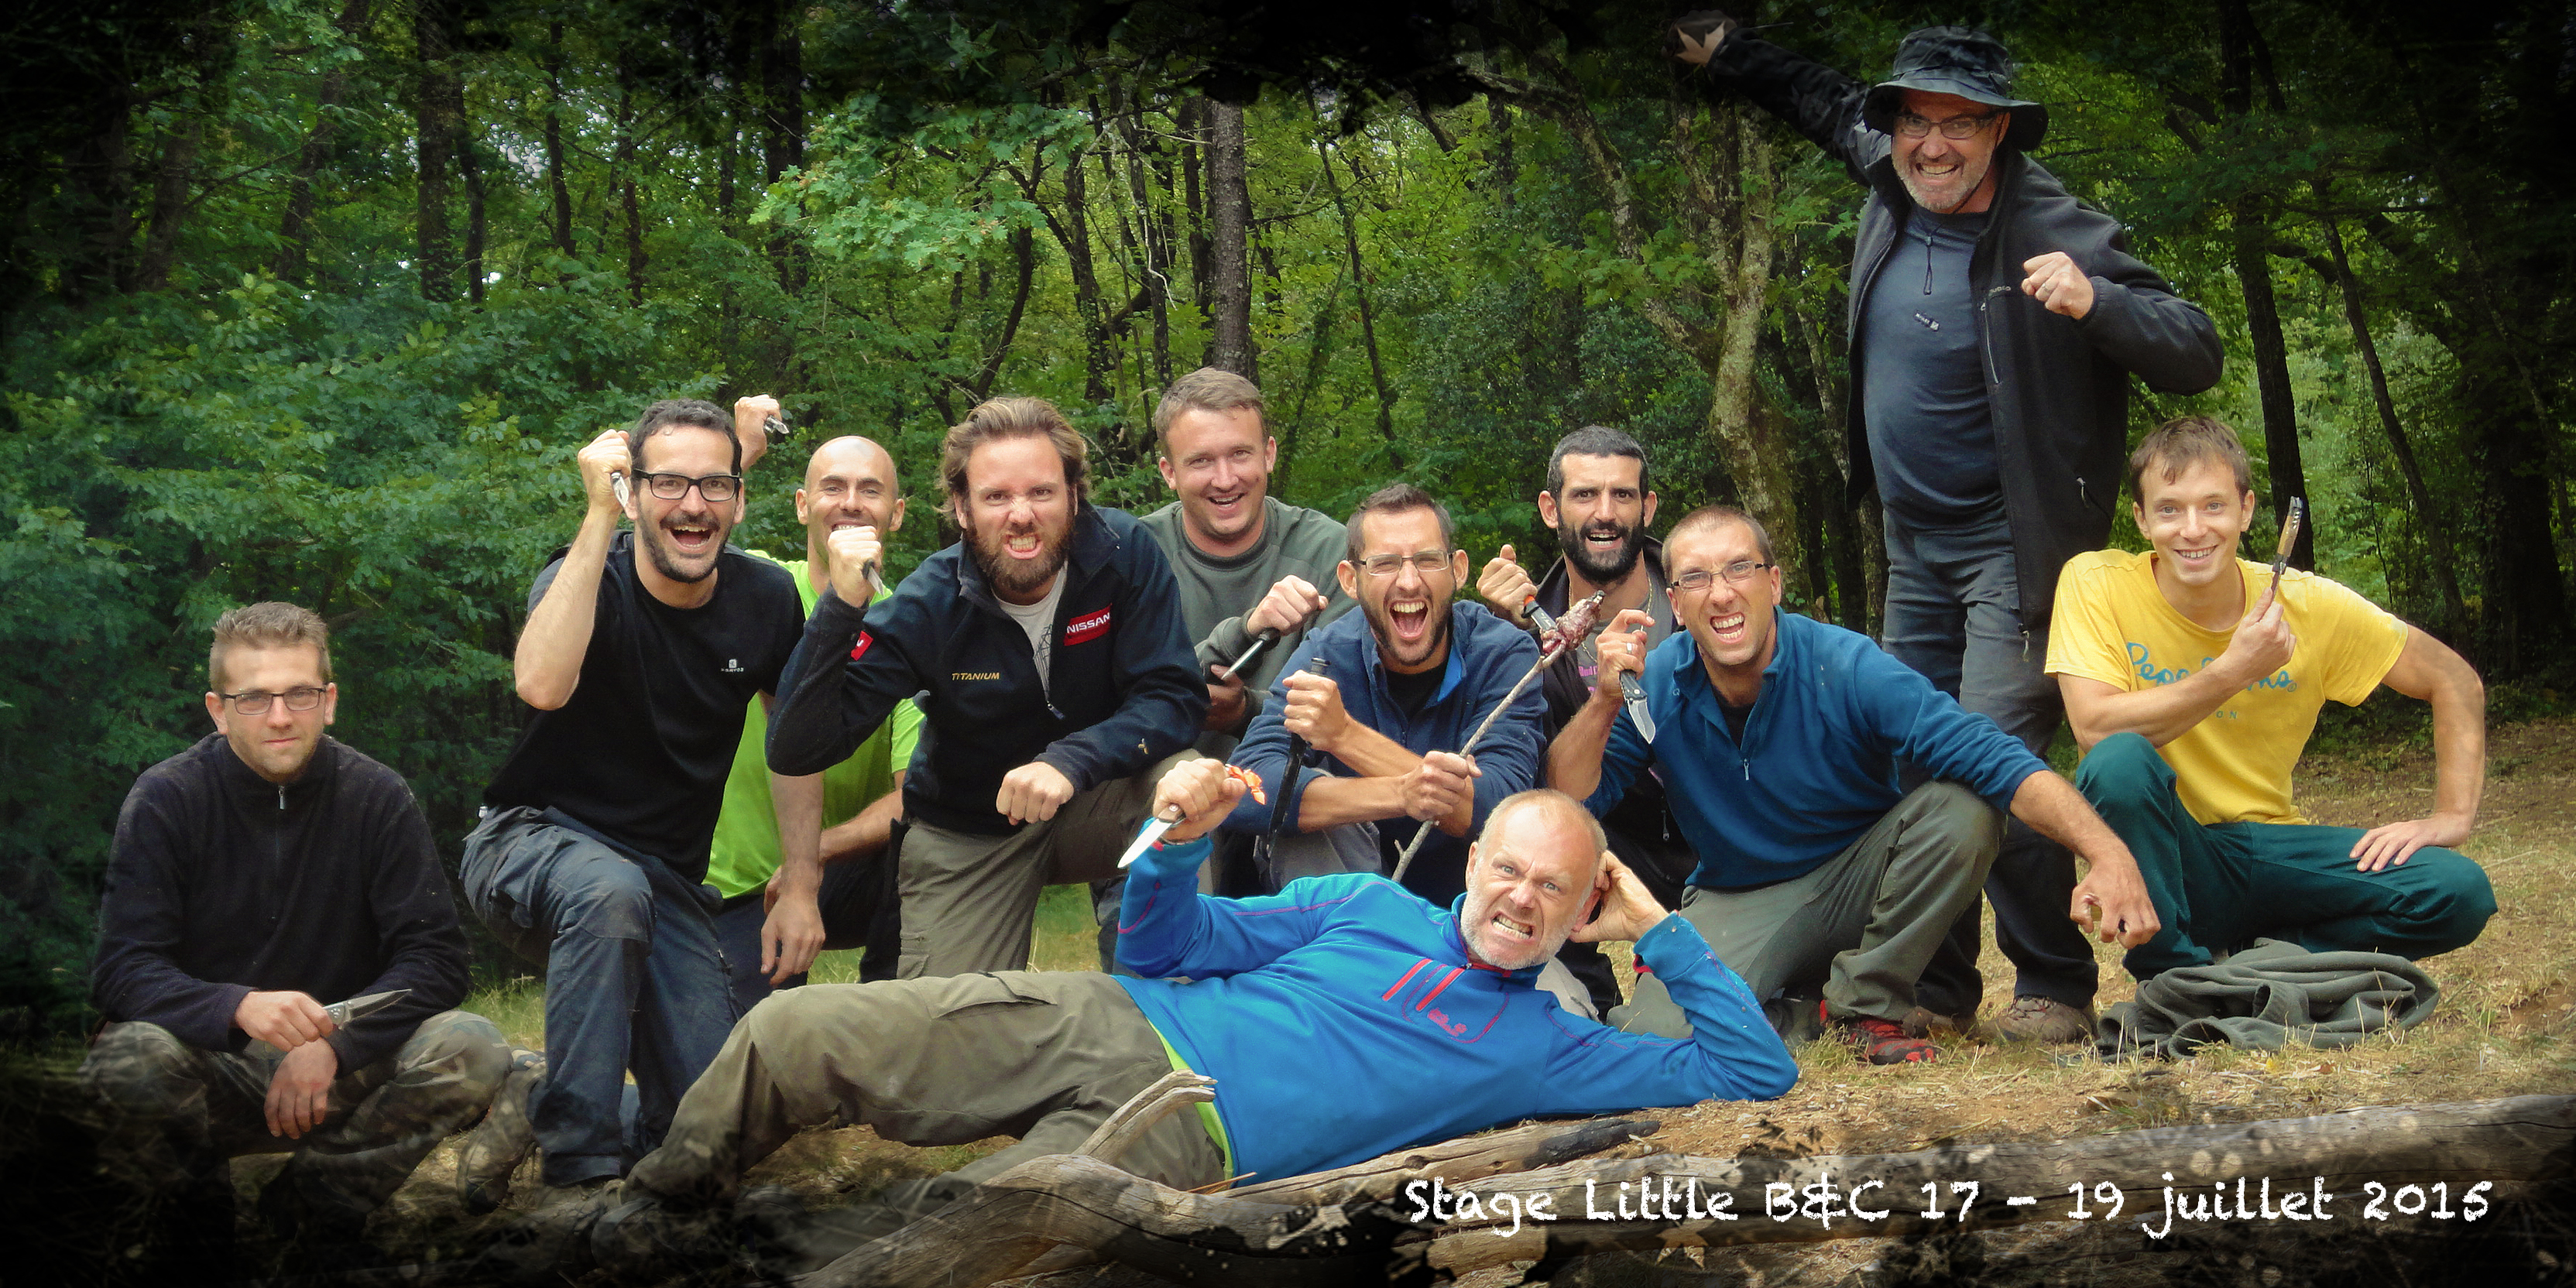 Stage Little B&C 17 - 19 juillet 2015.jpg